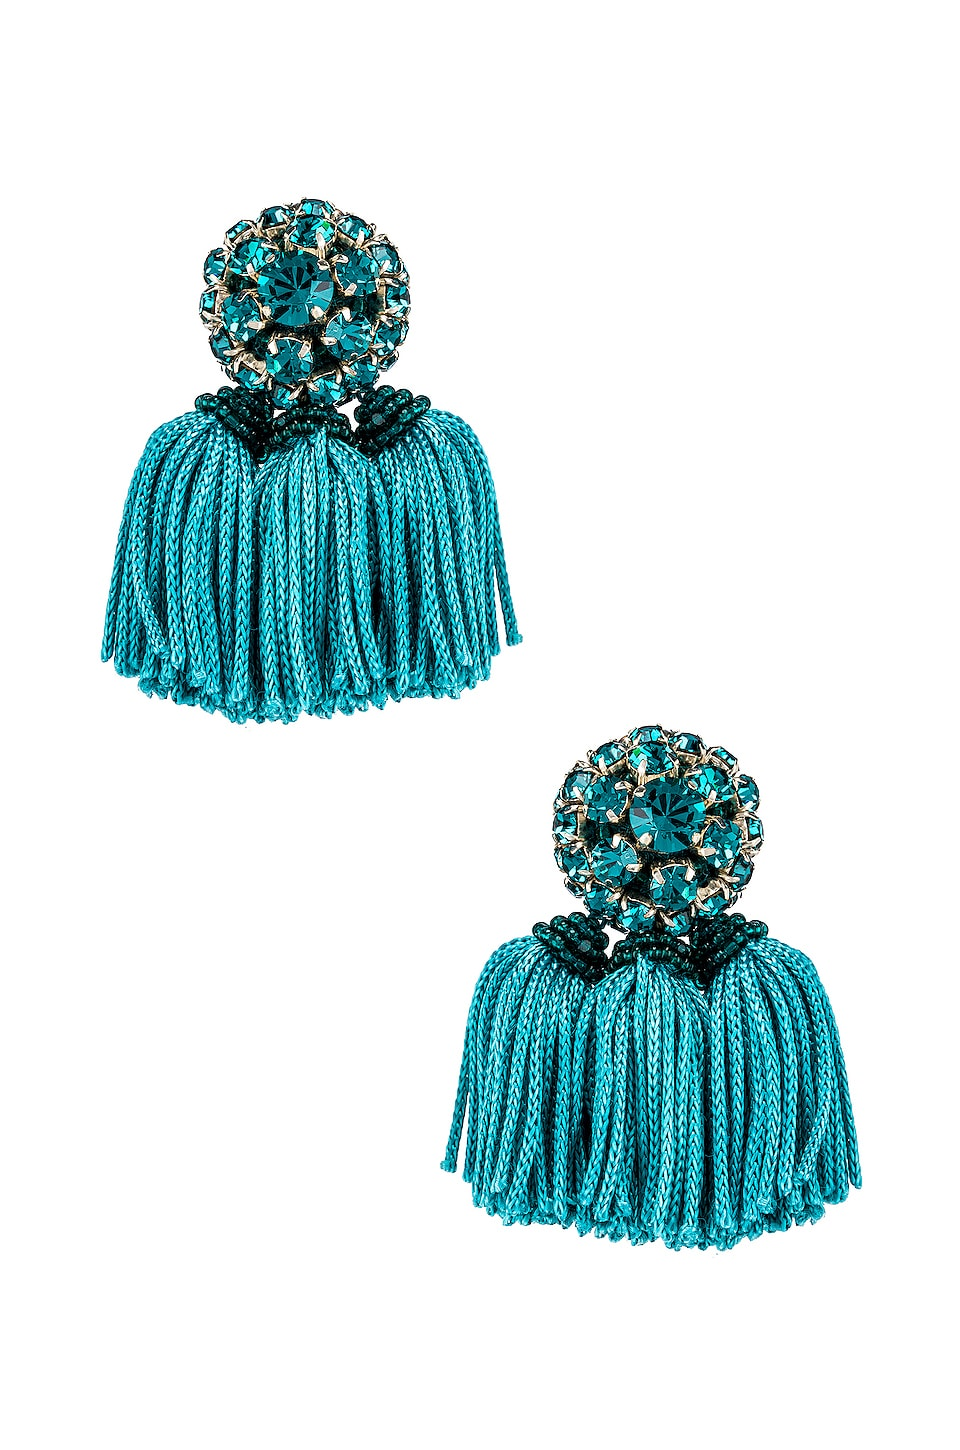 Sachin & Babi Crystal Cha Cha Earrings in Teal